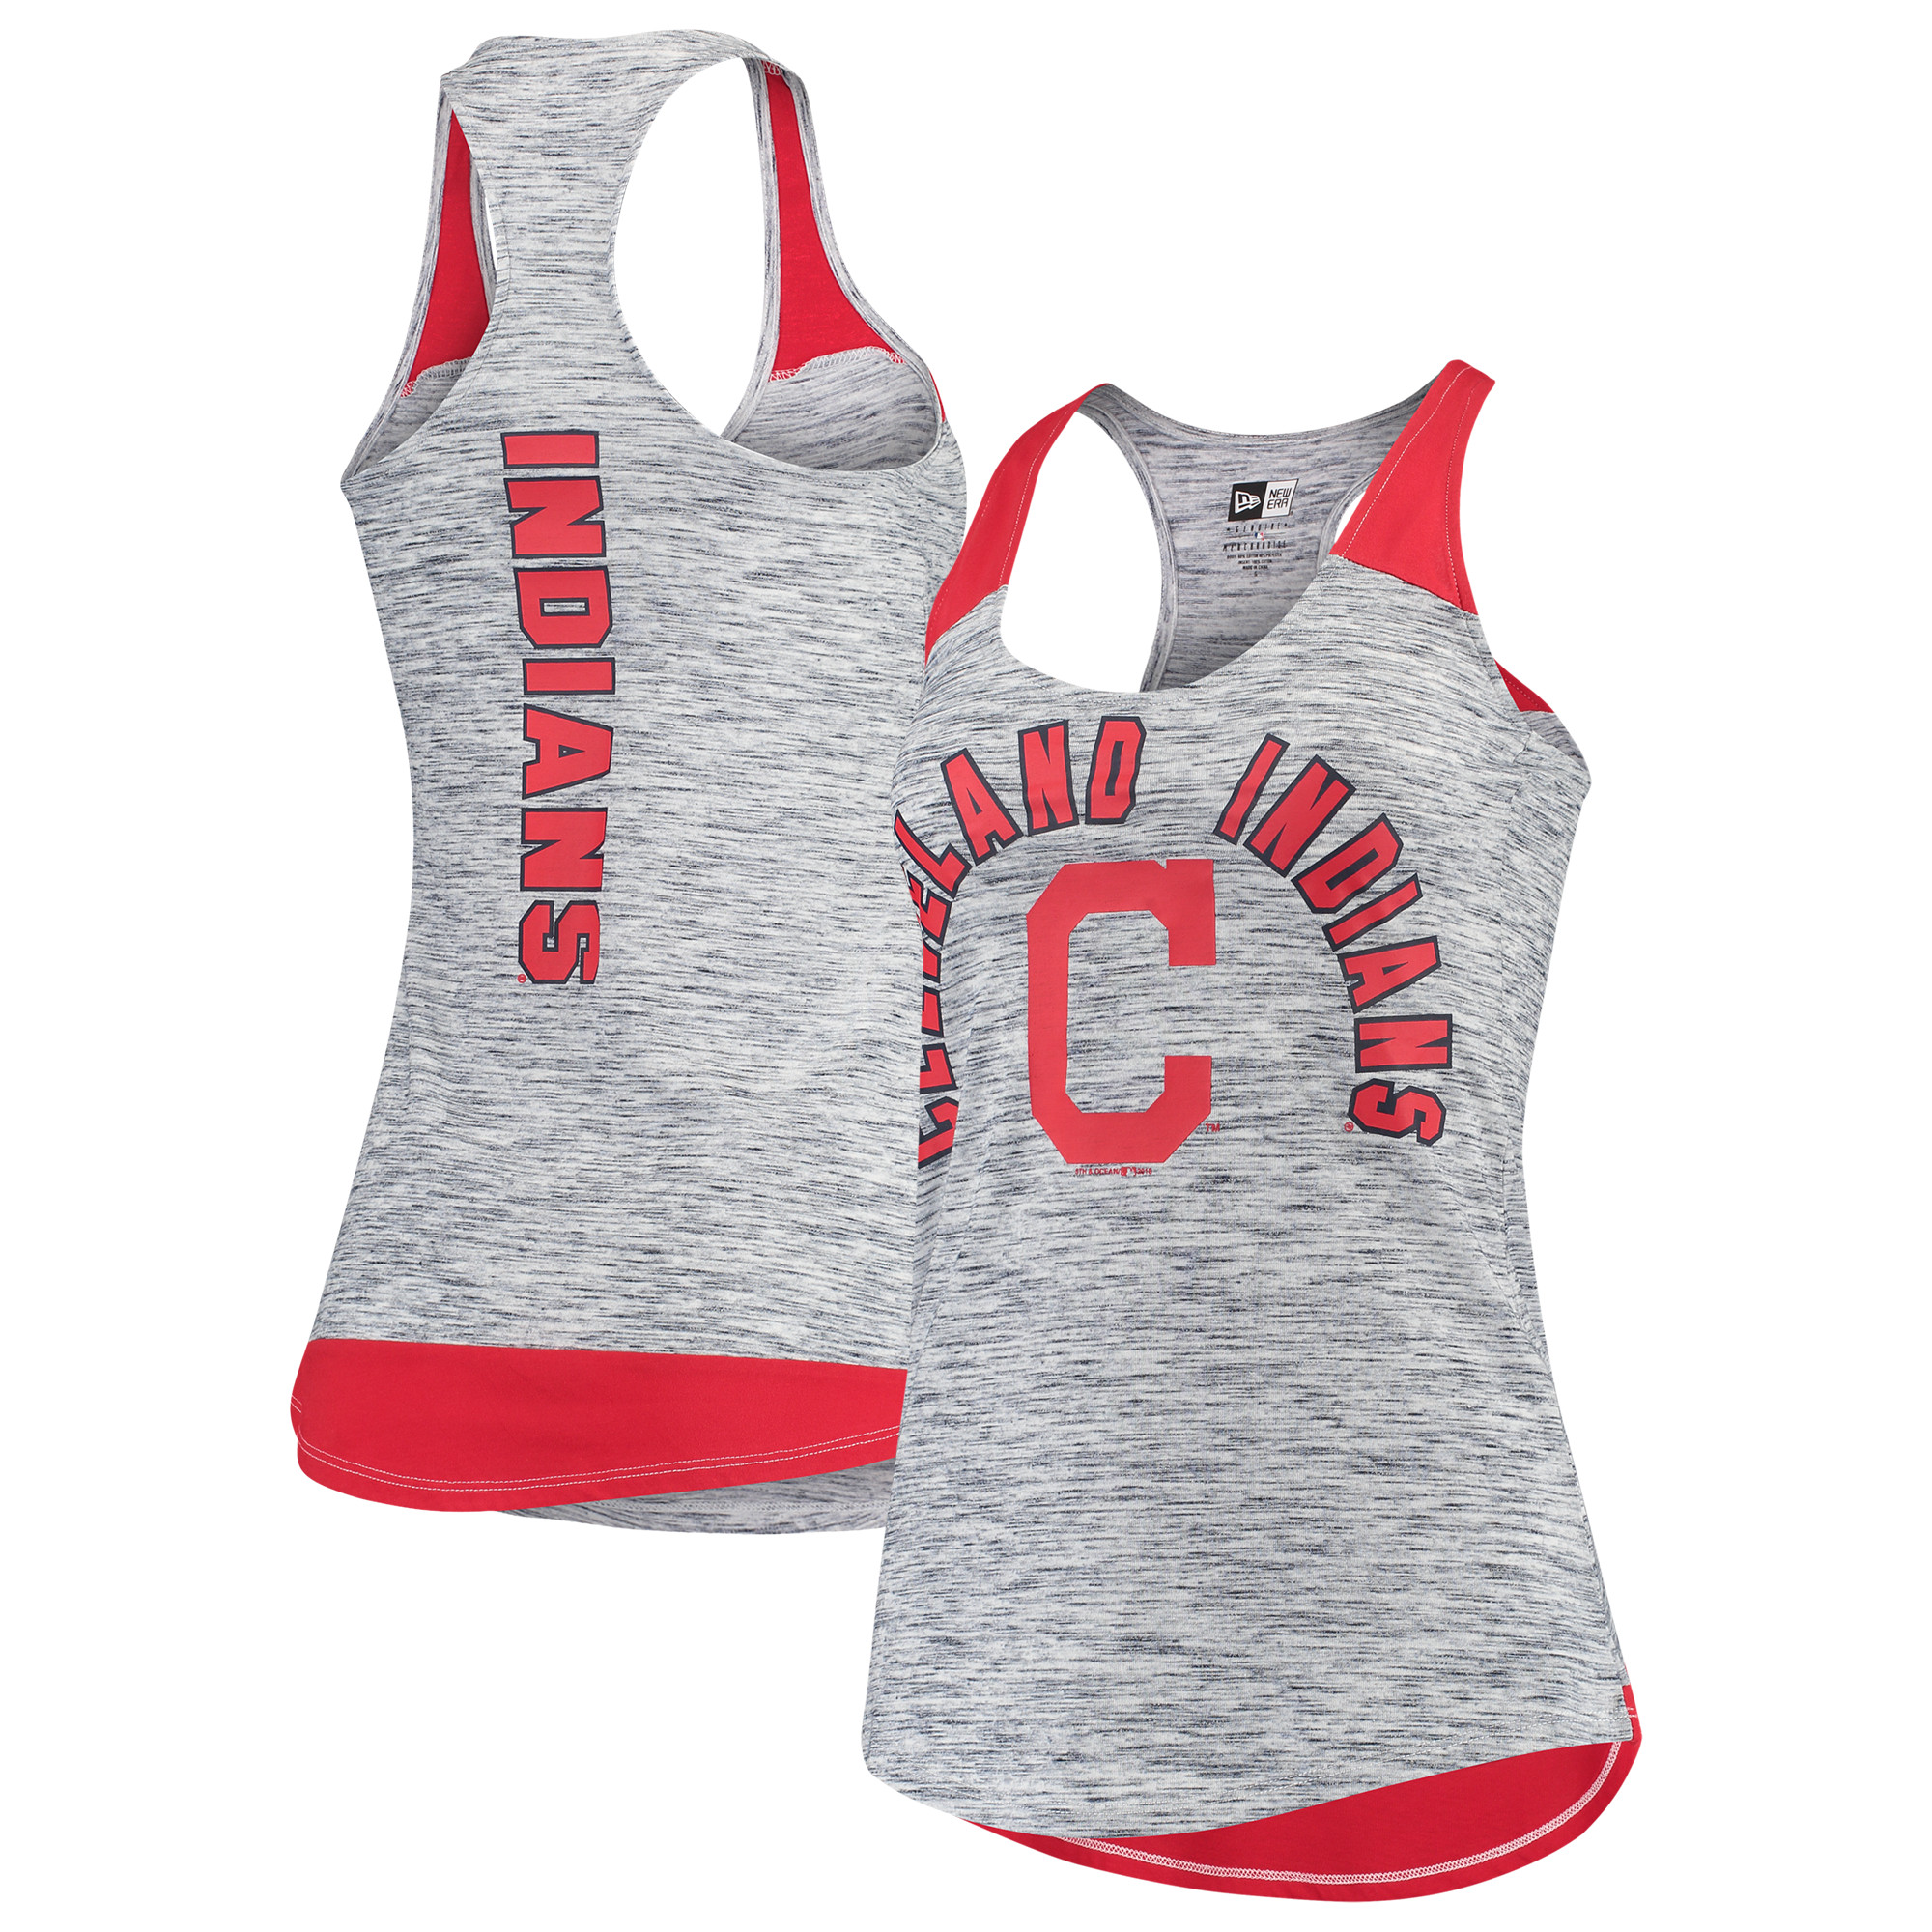 Cleveland Indians New Era Women's Space Dye Racerback Tank Top - Navy/Red